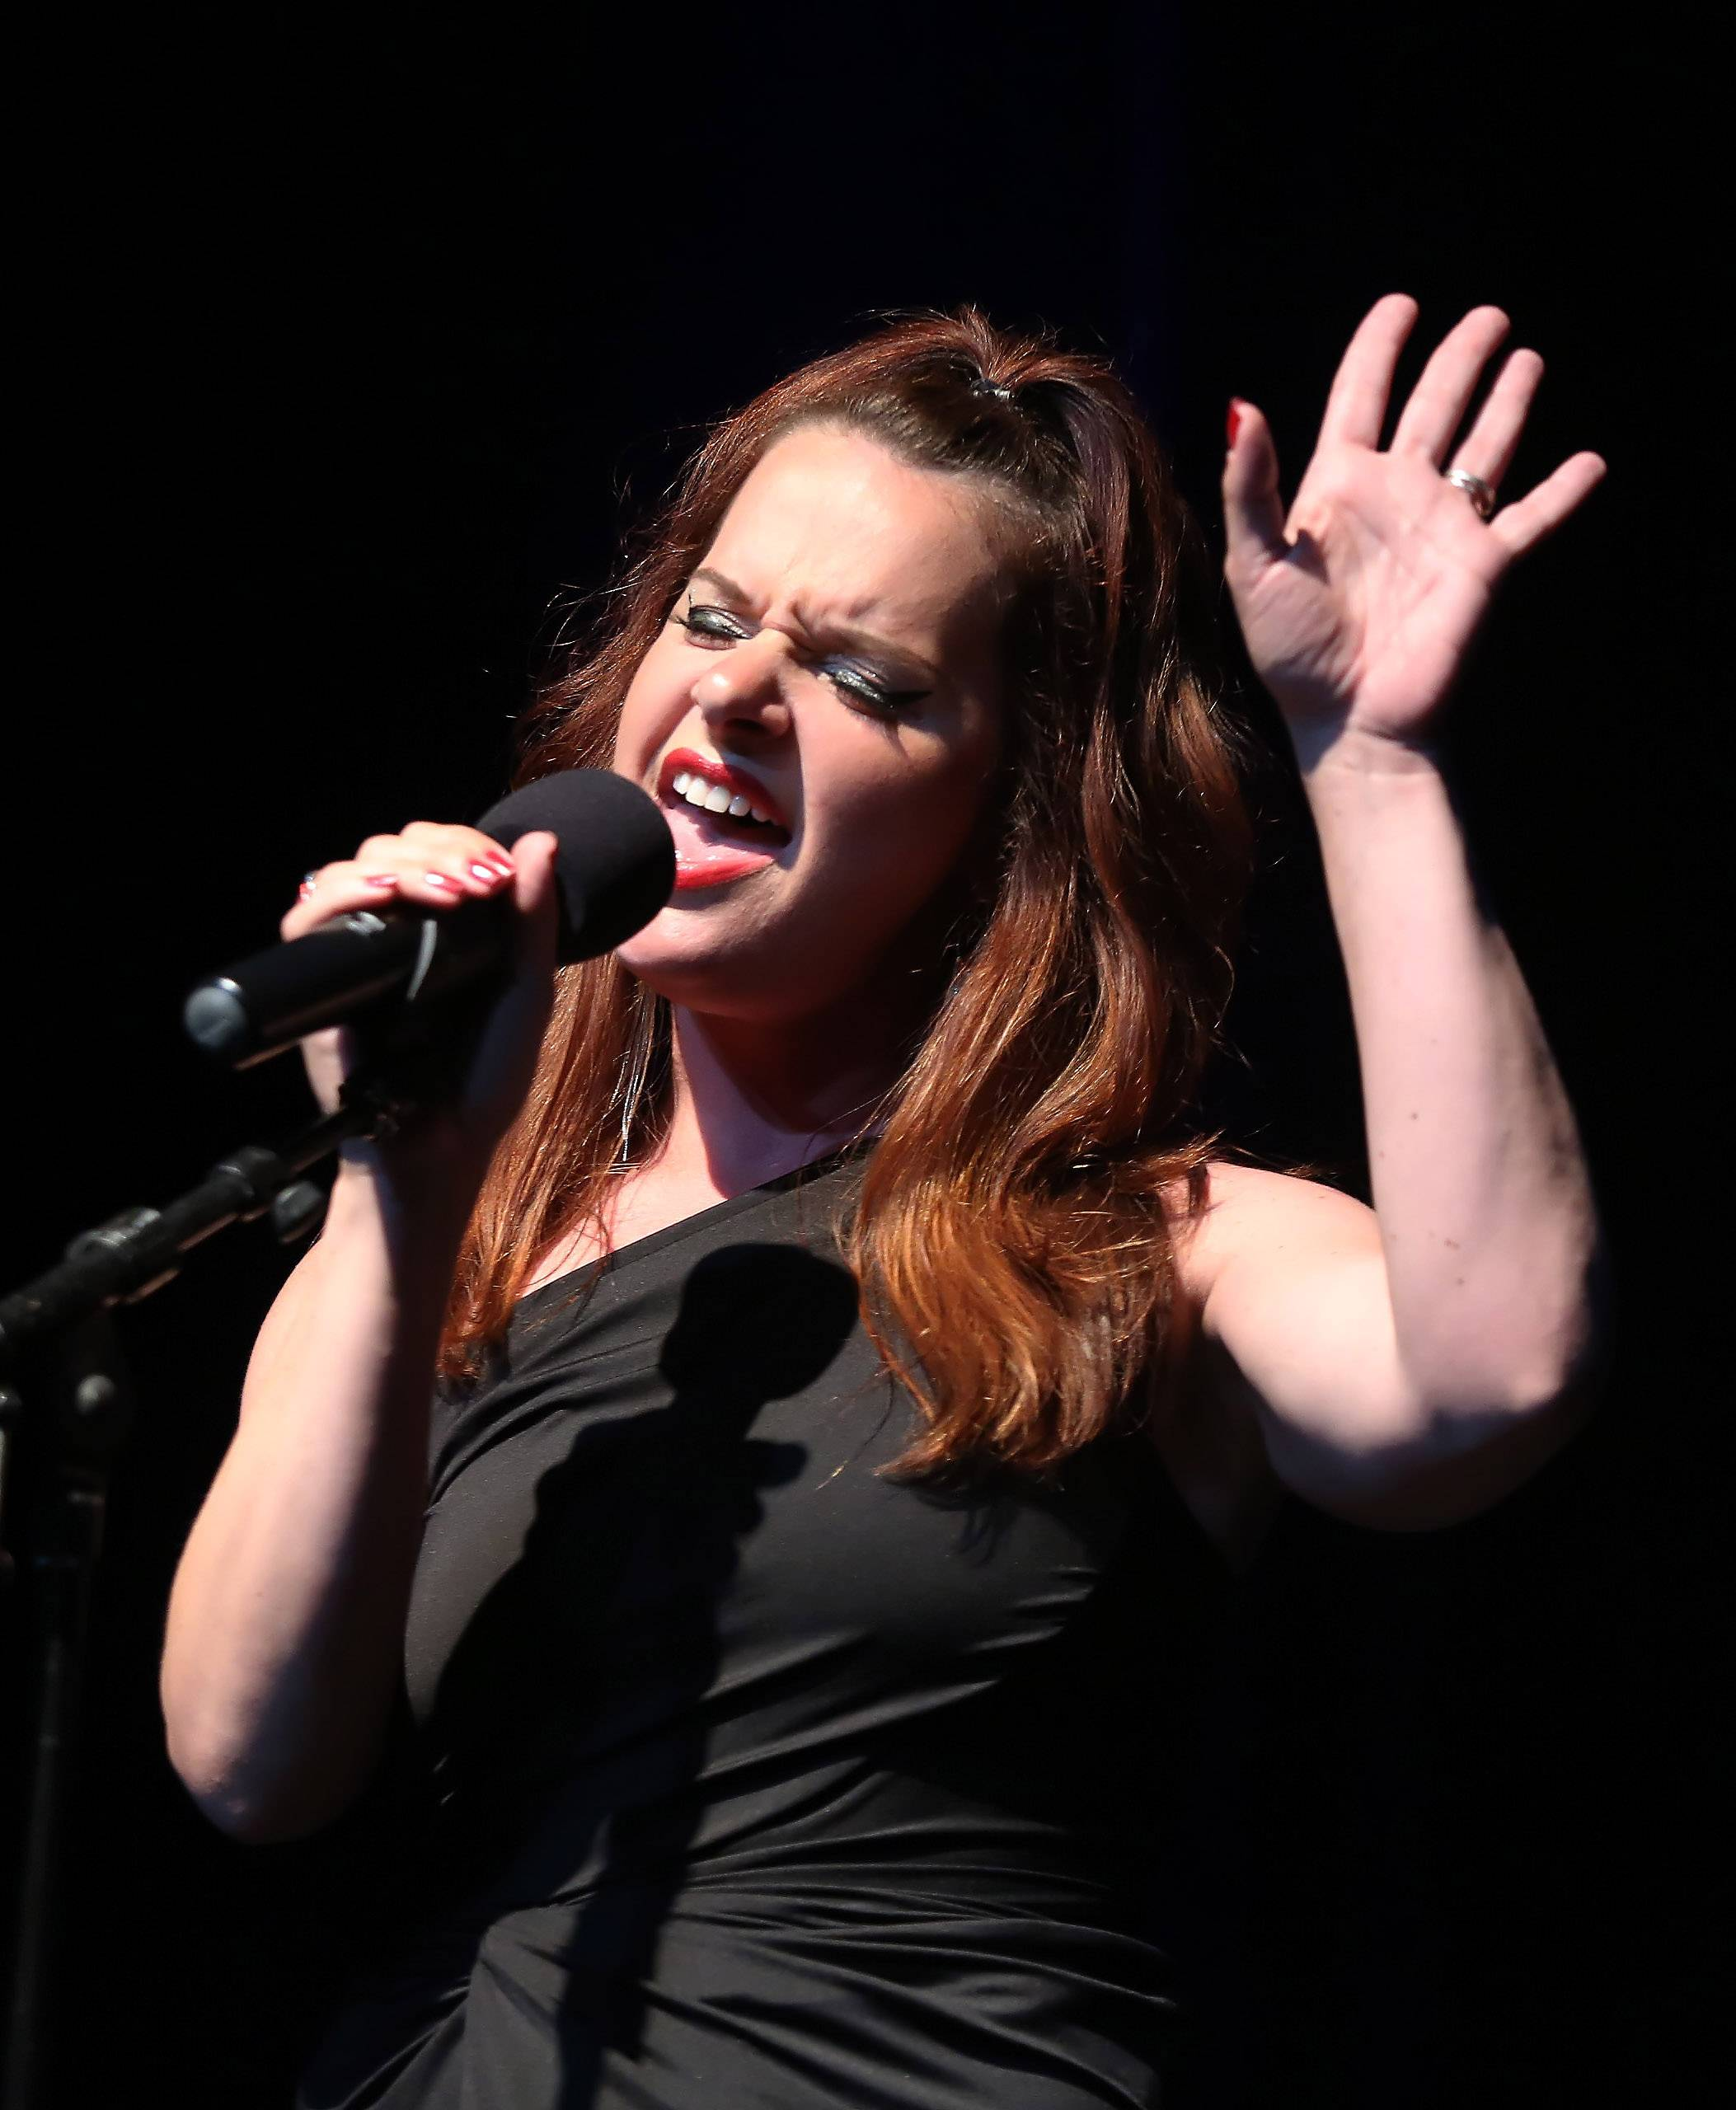 Rachel McPheeters of DeKalb sings during Sunday's performance of the top 20 finalists of the Suburban Chicago's Got Talent competition Sunday at the Prairie Center for the Arts in Schaumburg.